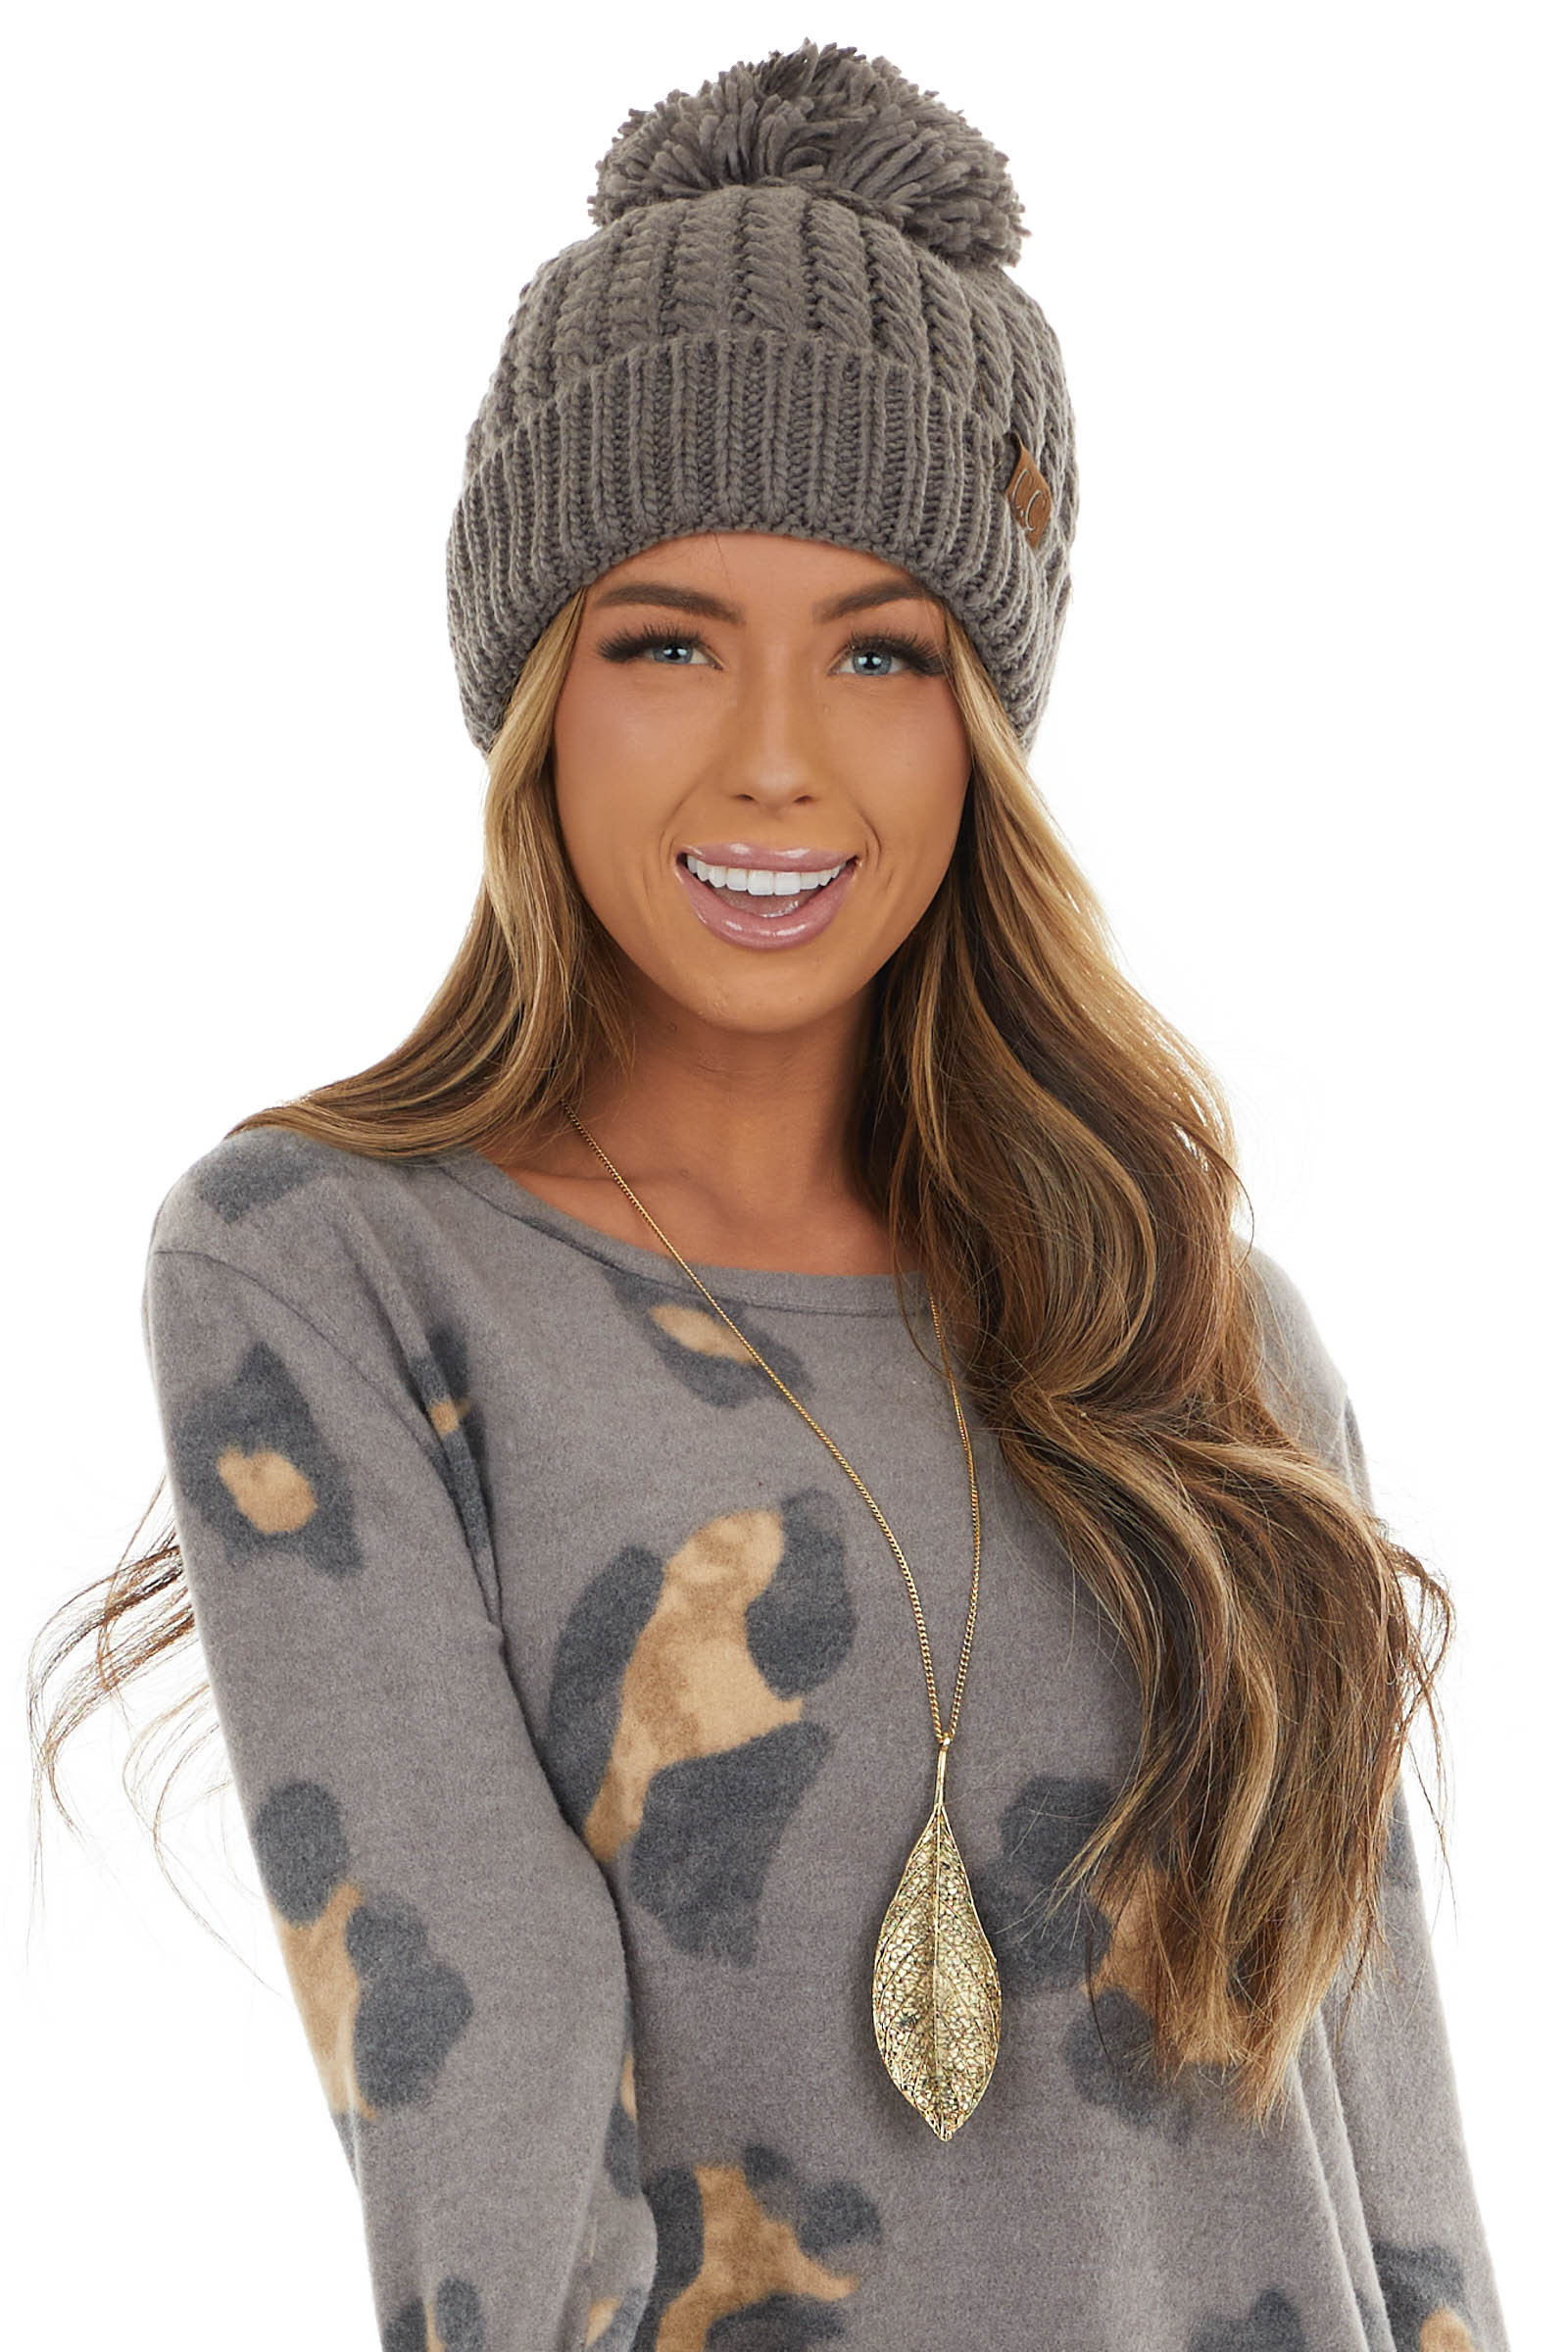 Charcoal Twisted Mock Cable Knit Beanie with Pom Detail